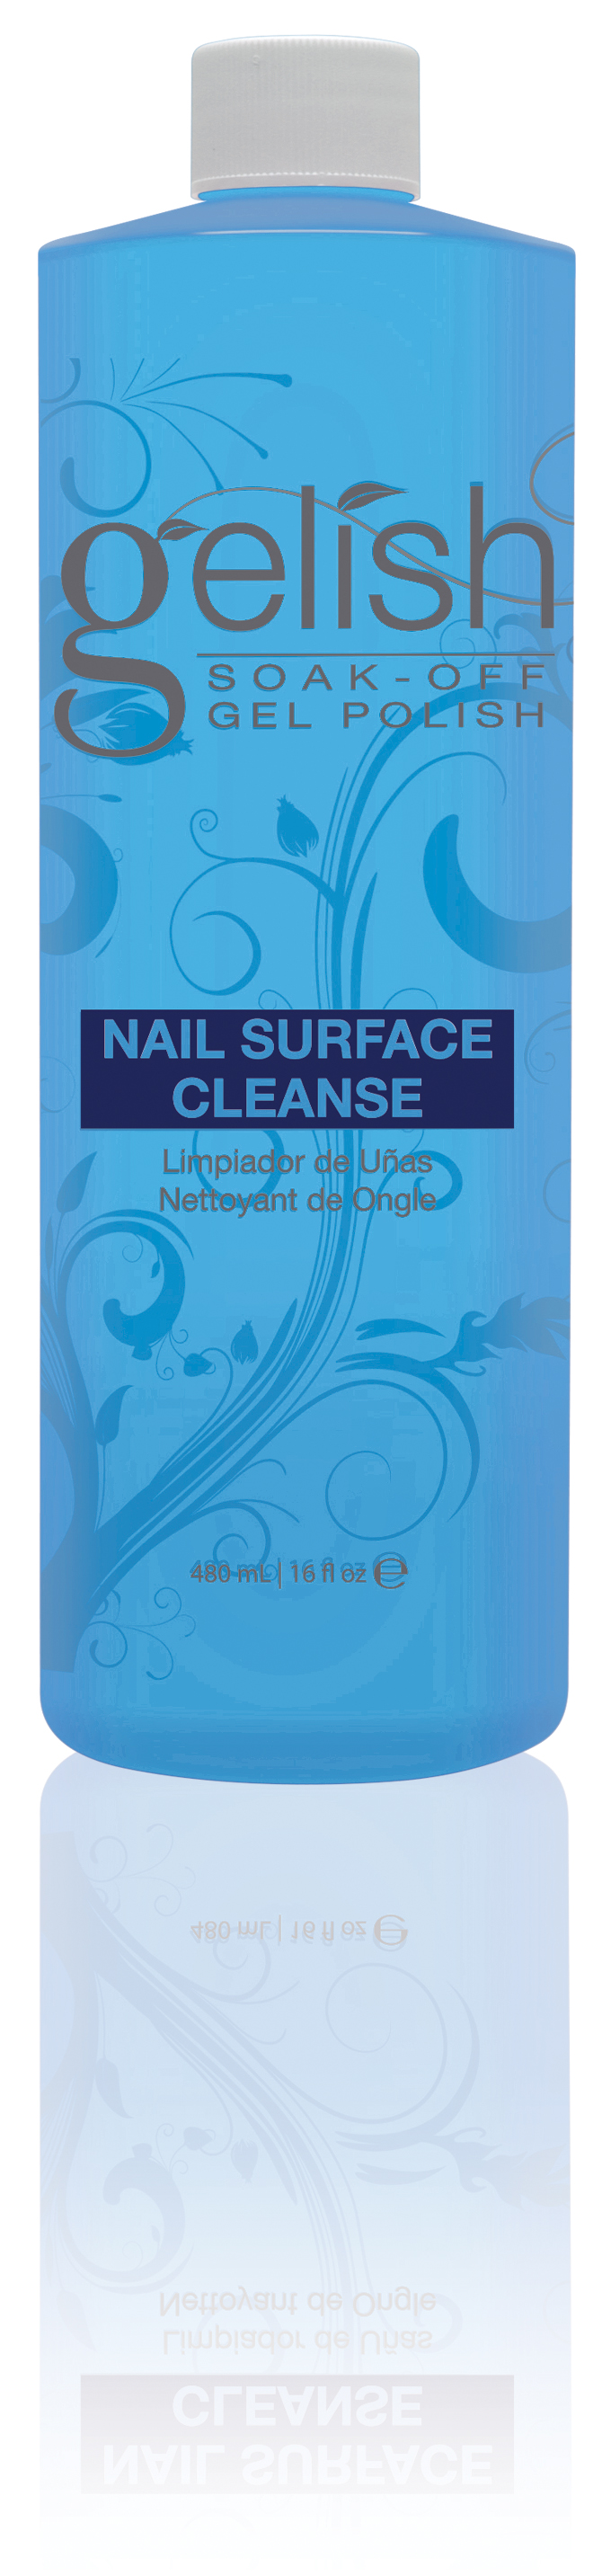 GELISH �������� ��� �������� ������� ���� / GELISH Nail Surface Cleanser 480��